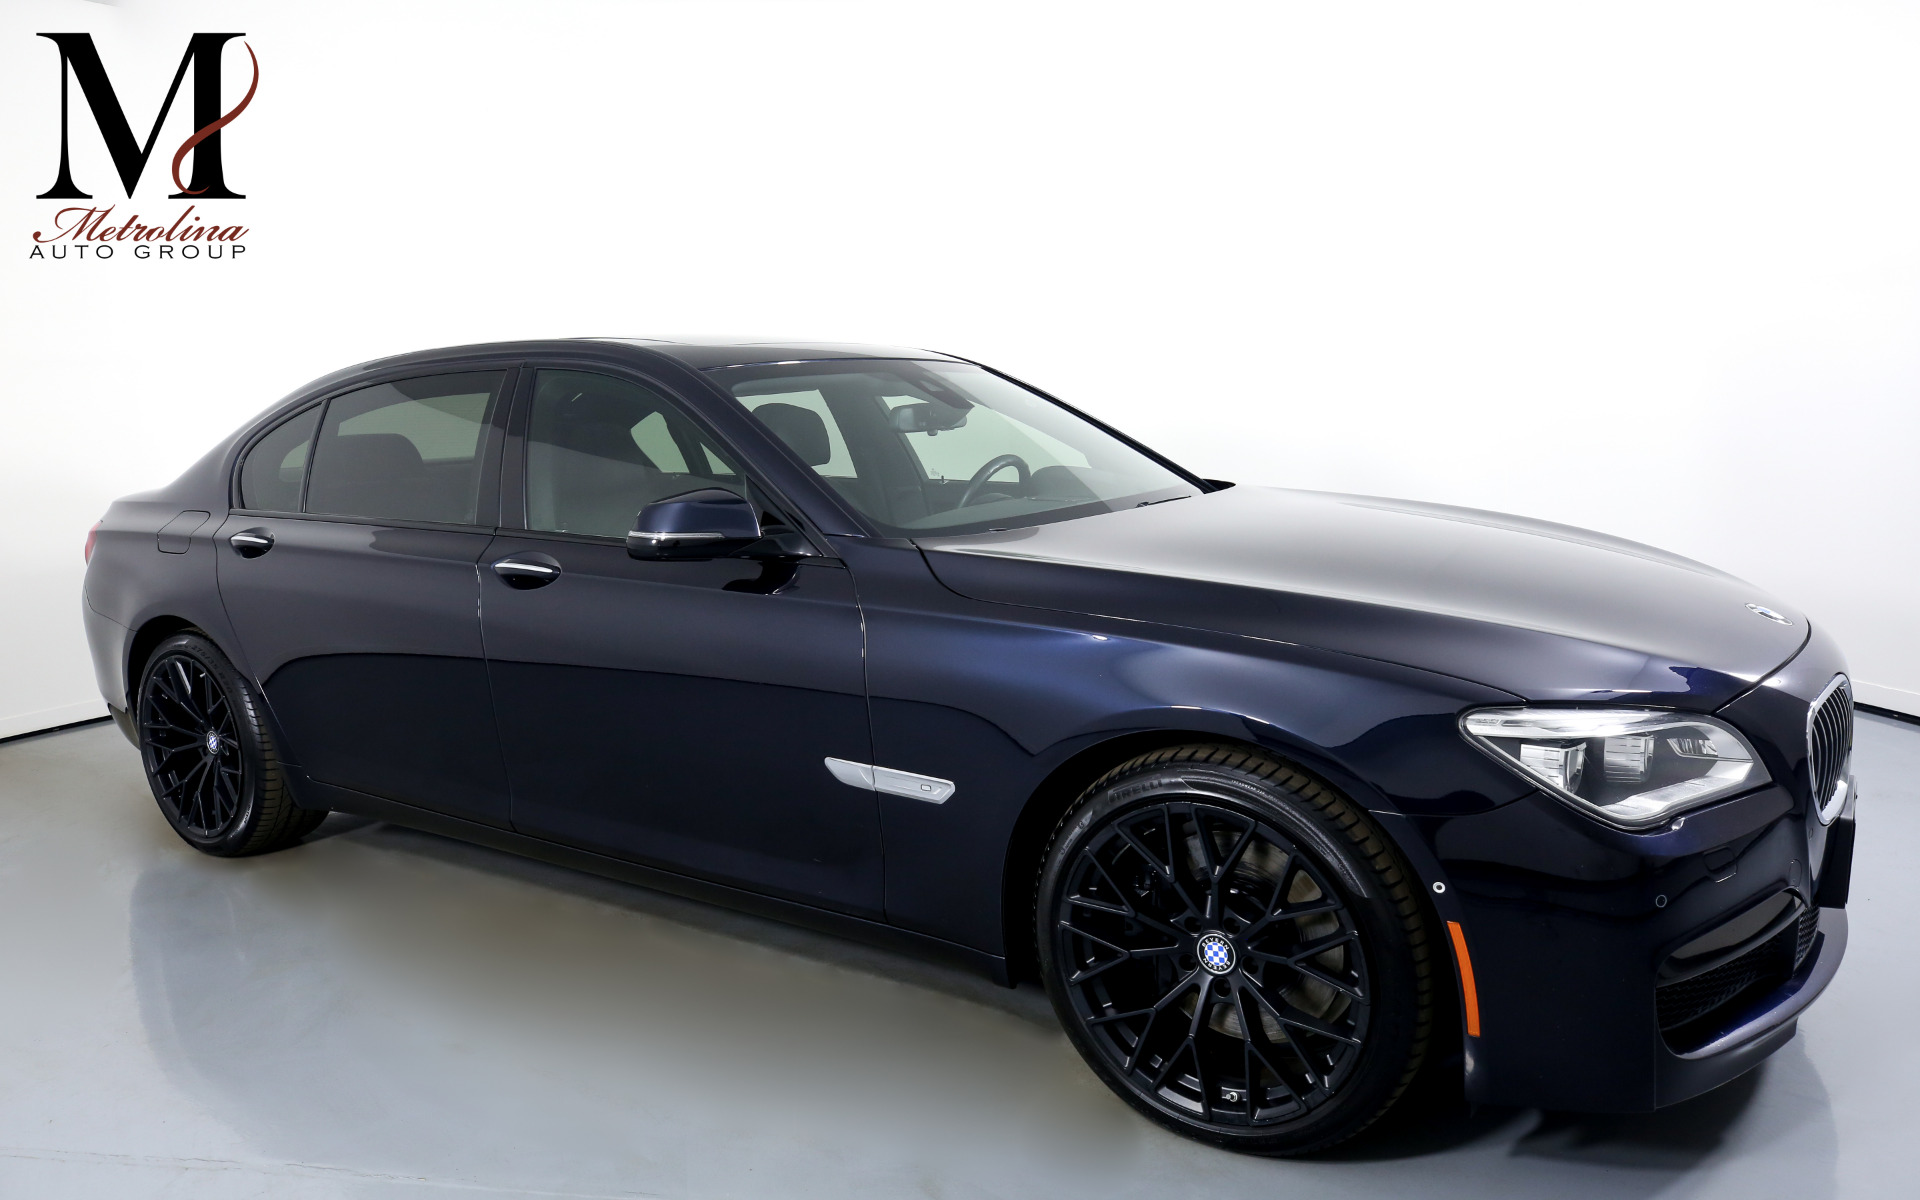 Used 2013 BMW 7 Series 750Li for sale Sold at Metrolina Auto Group in Charlotte NC 28217 - 1